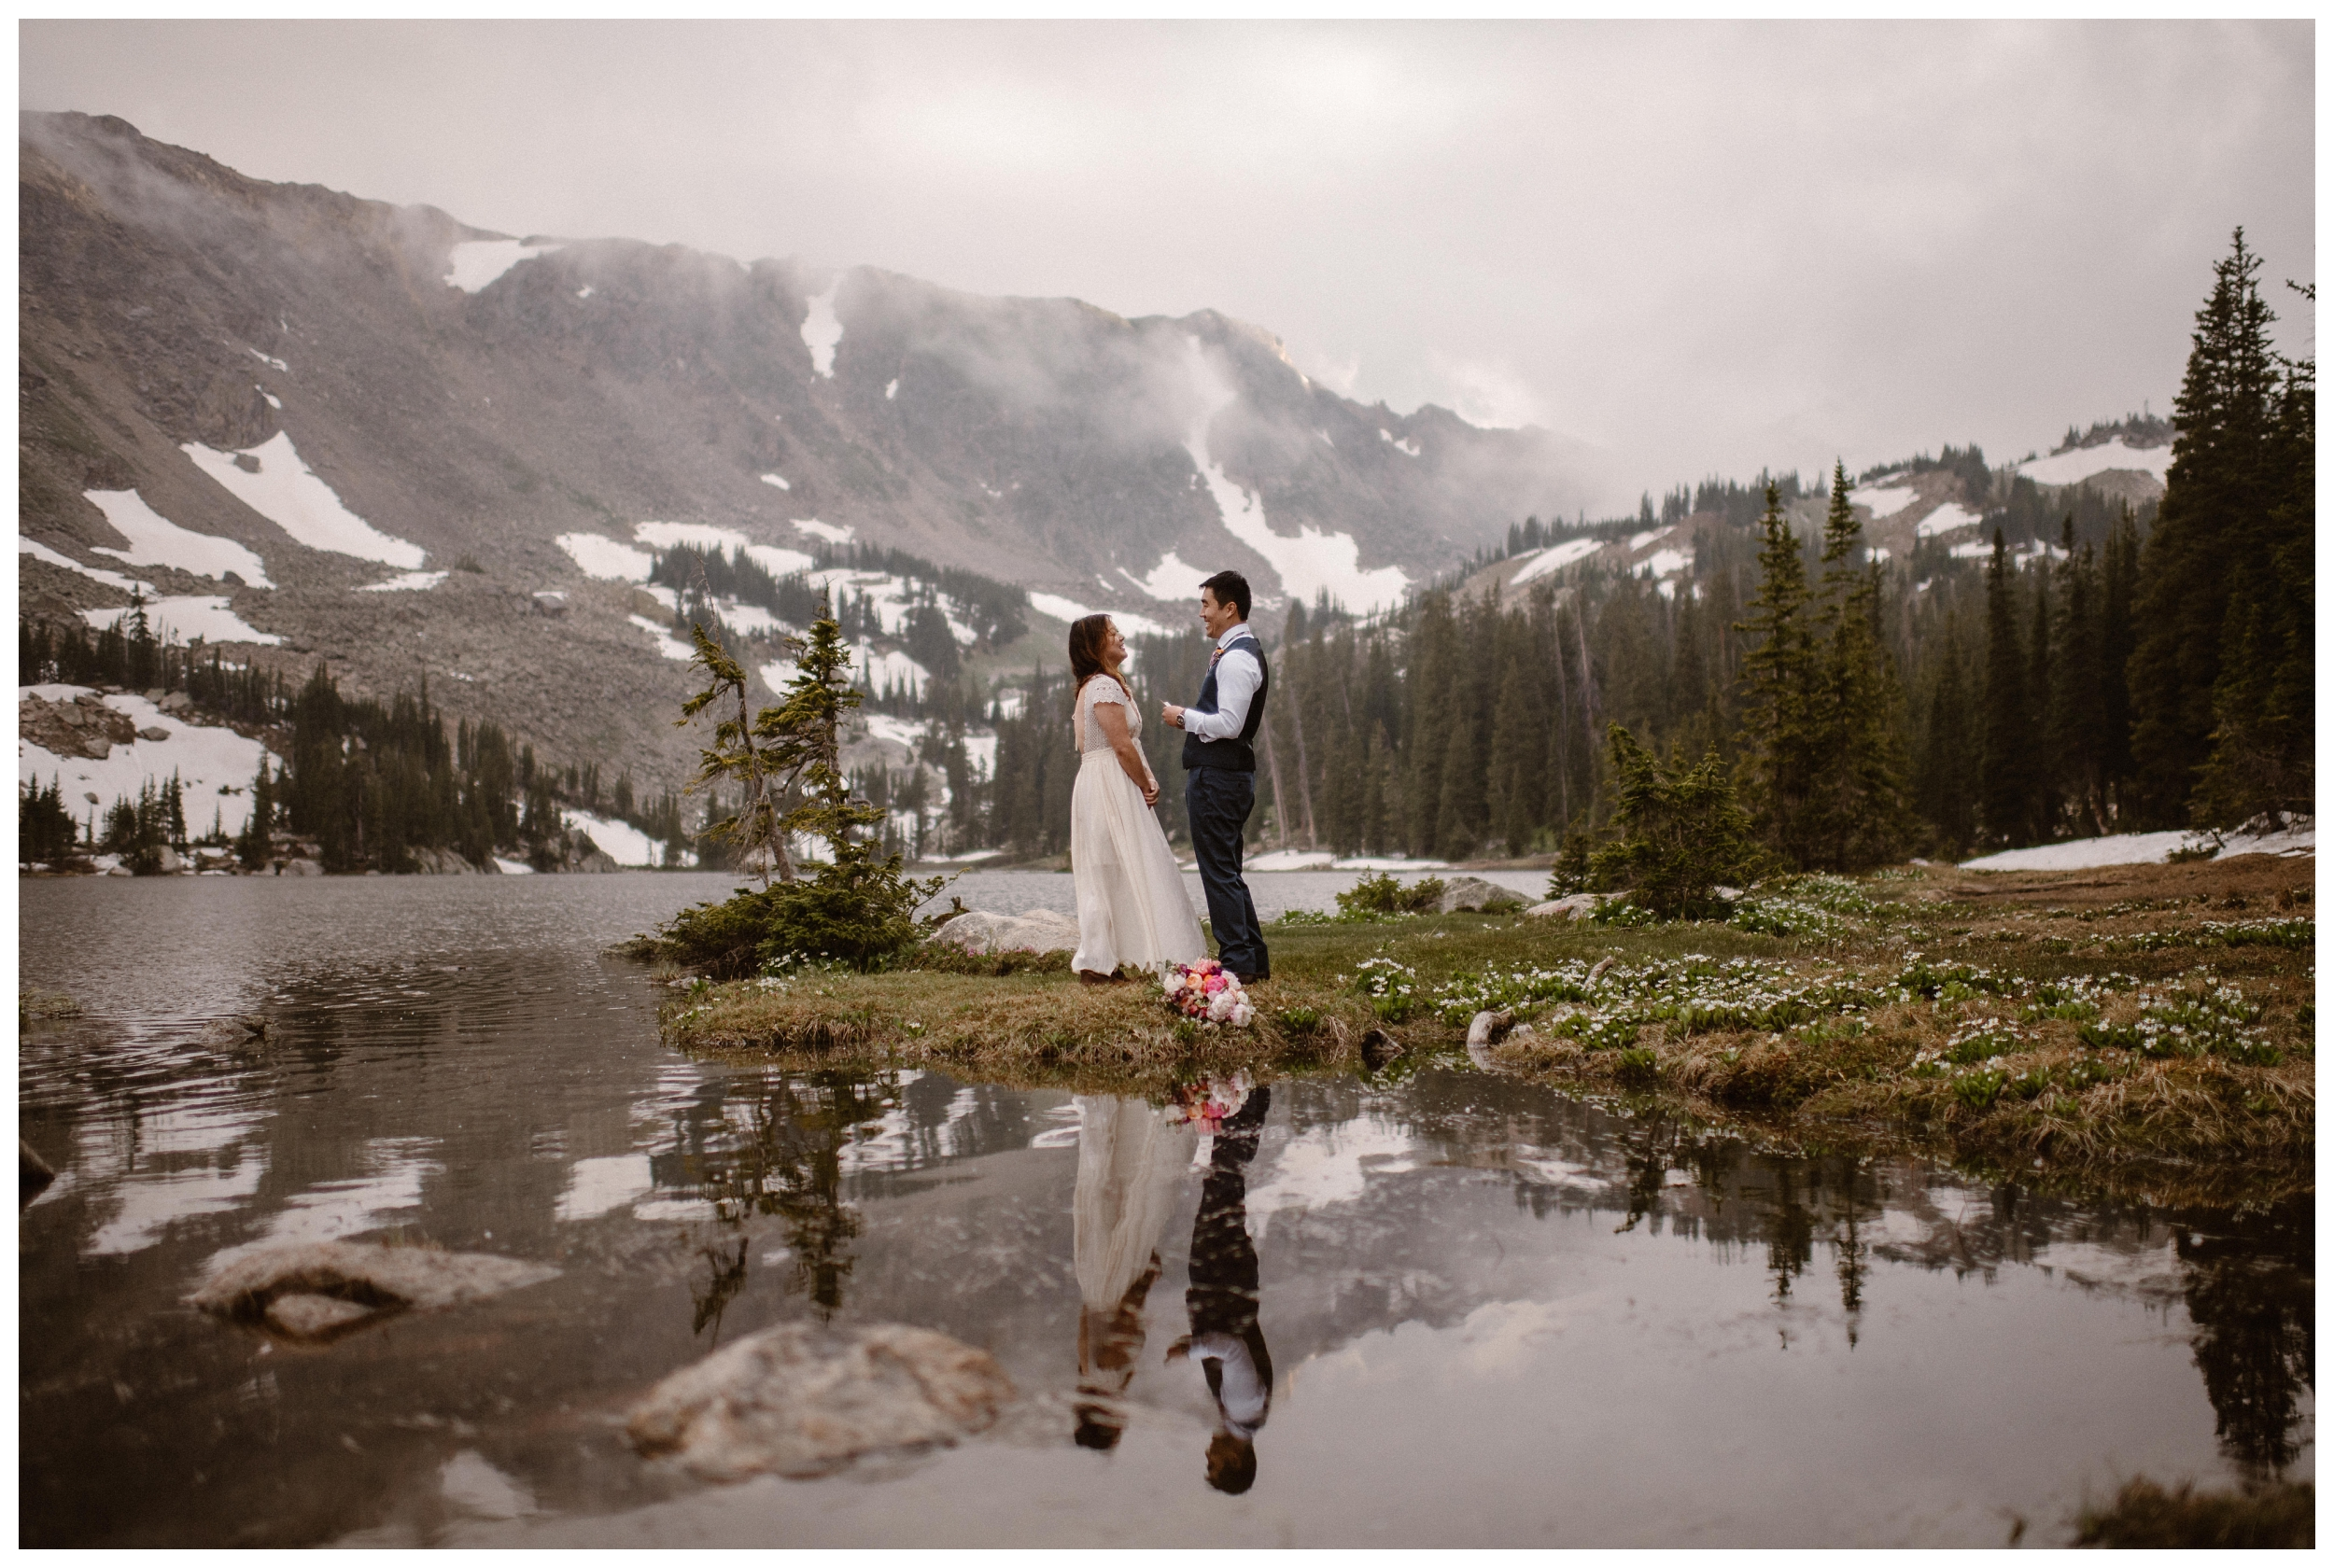 Clouds and snow dot the mountain cliffs behind Leslie and Jinson as they say their vows at Gem Lake during their elopement ceremony. Photo by Maddie Mae Photo, Adventure Instead.